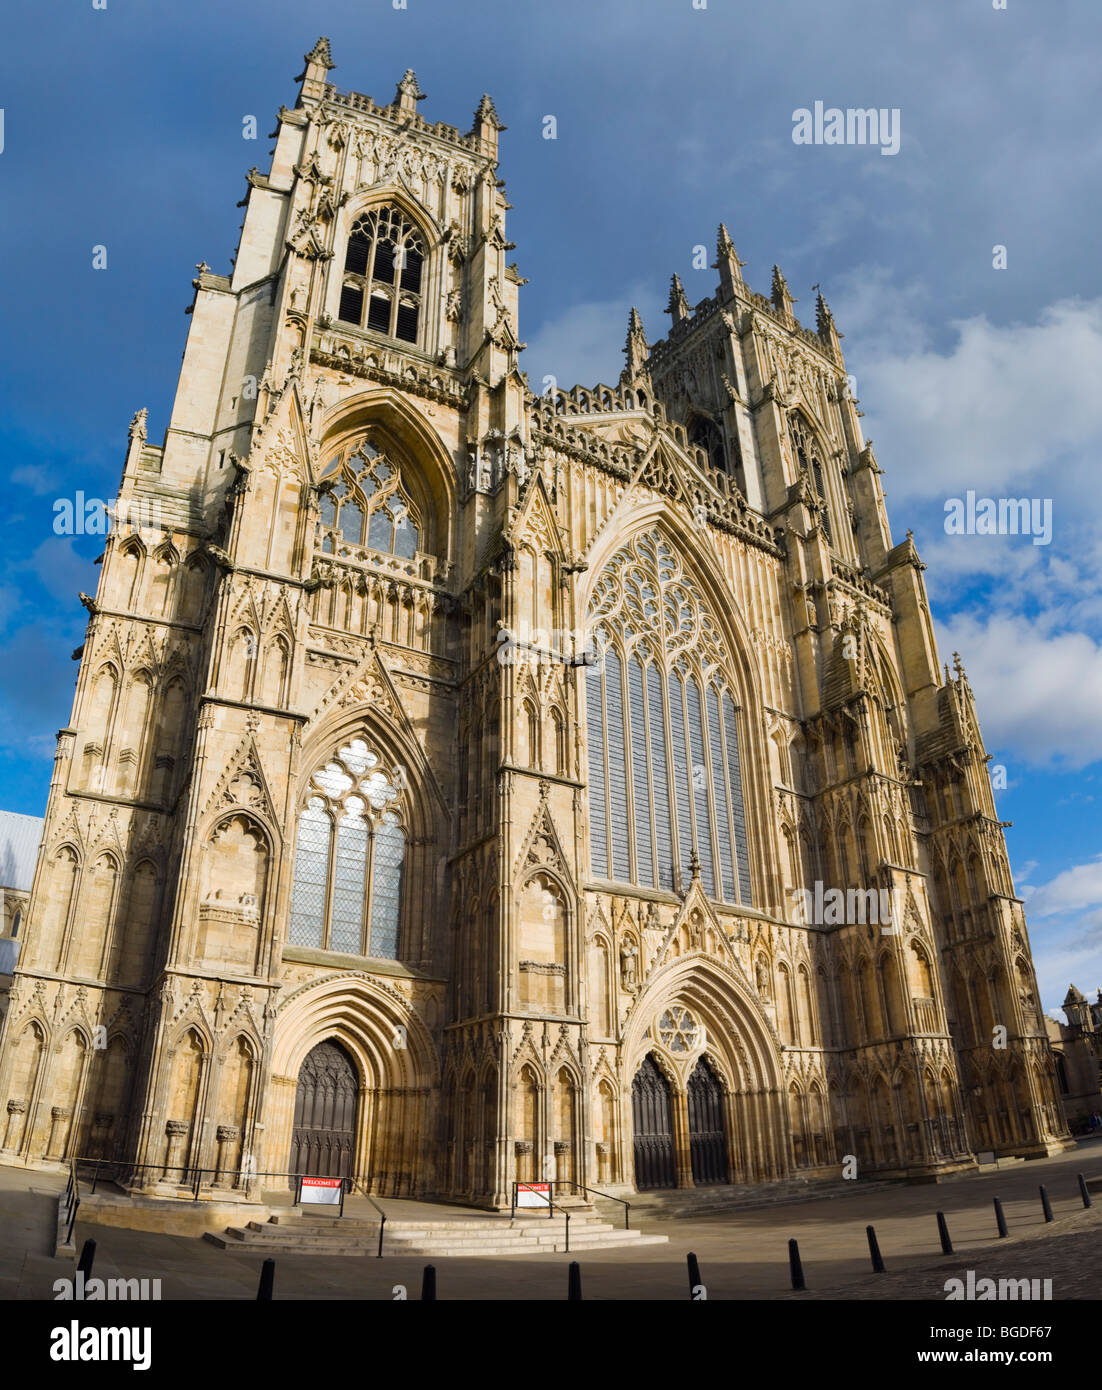 York Minster west entrance, York, Yorkshire, England, United Kingdom, Europe Stock Photo